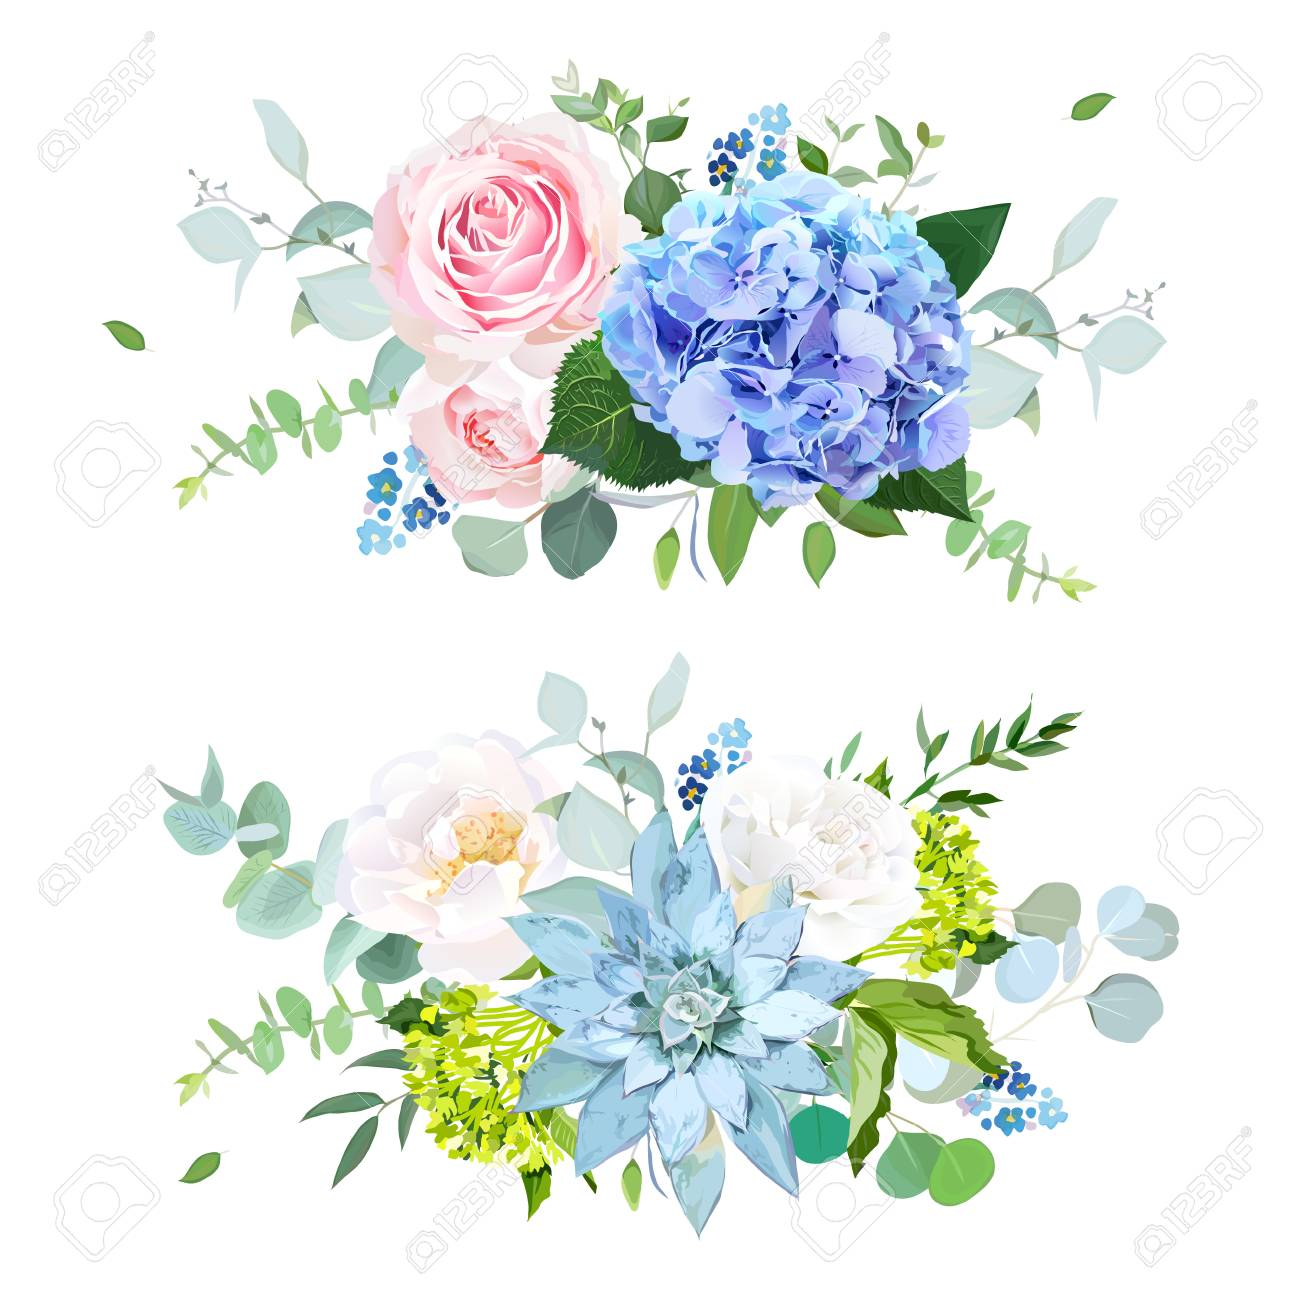 Light Blue Green Hydrangea Pink White Rose Succulent Forget Royalty Free Cliparts Vectors And Stock Illustration Image 114746045